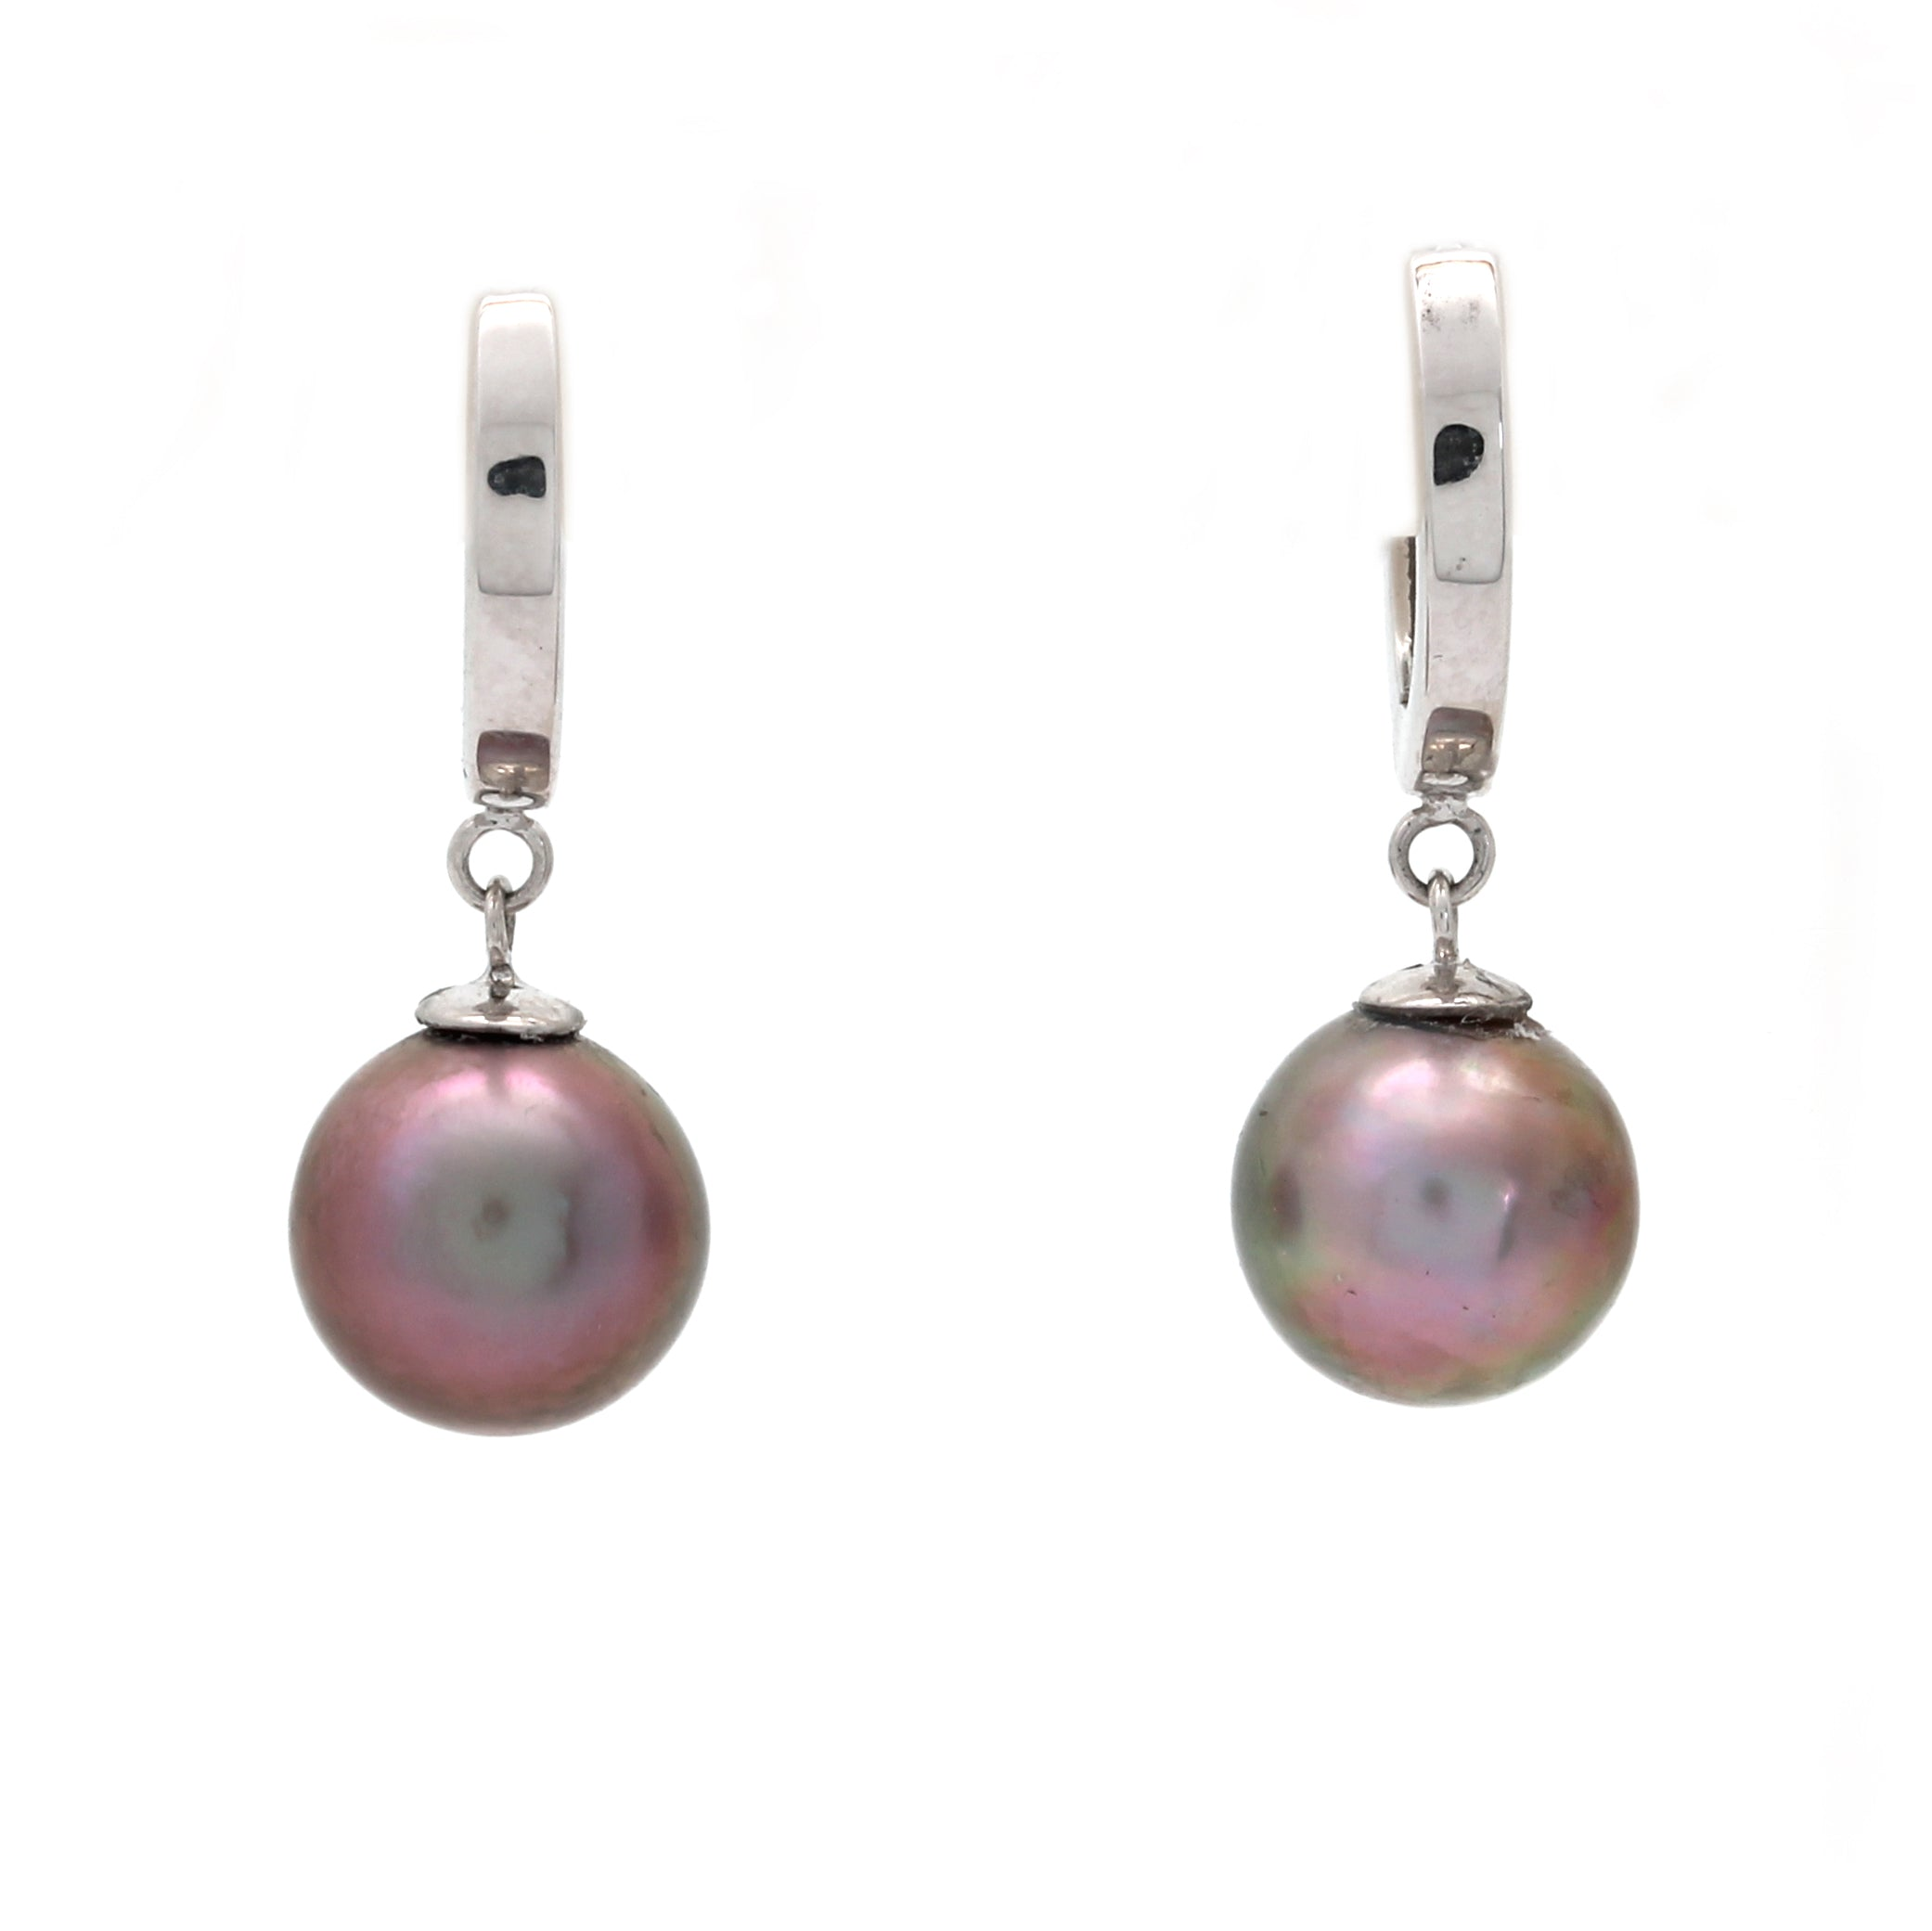 14K White Gold Earrings with Pearls from the Sea of Cortez